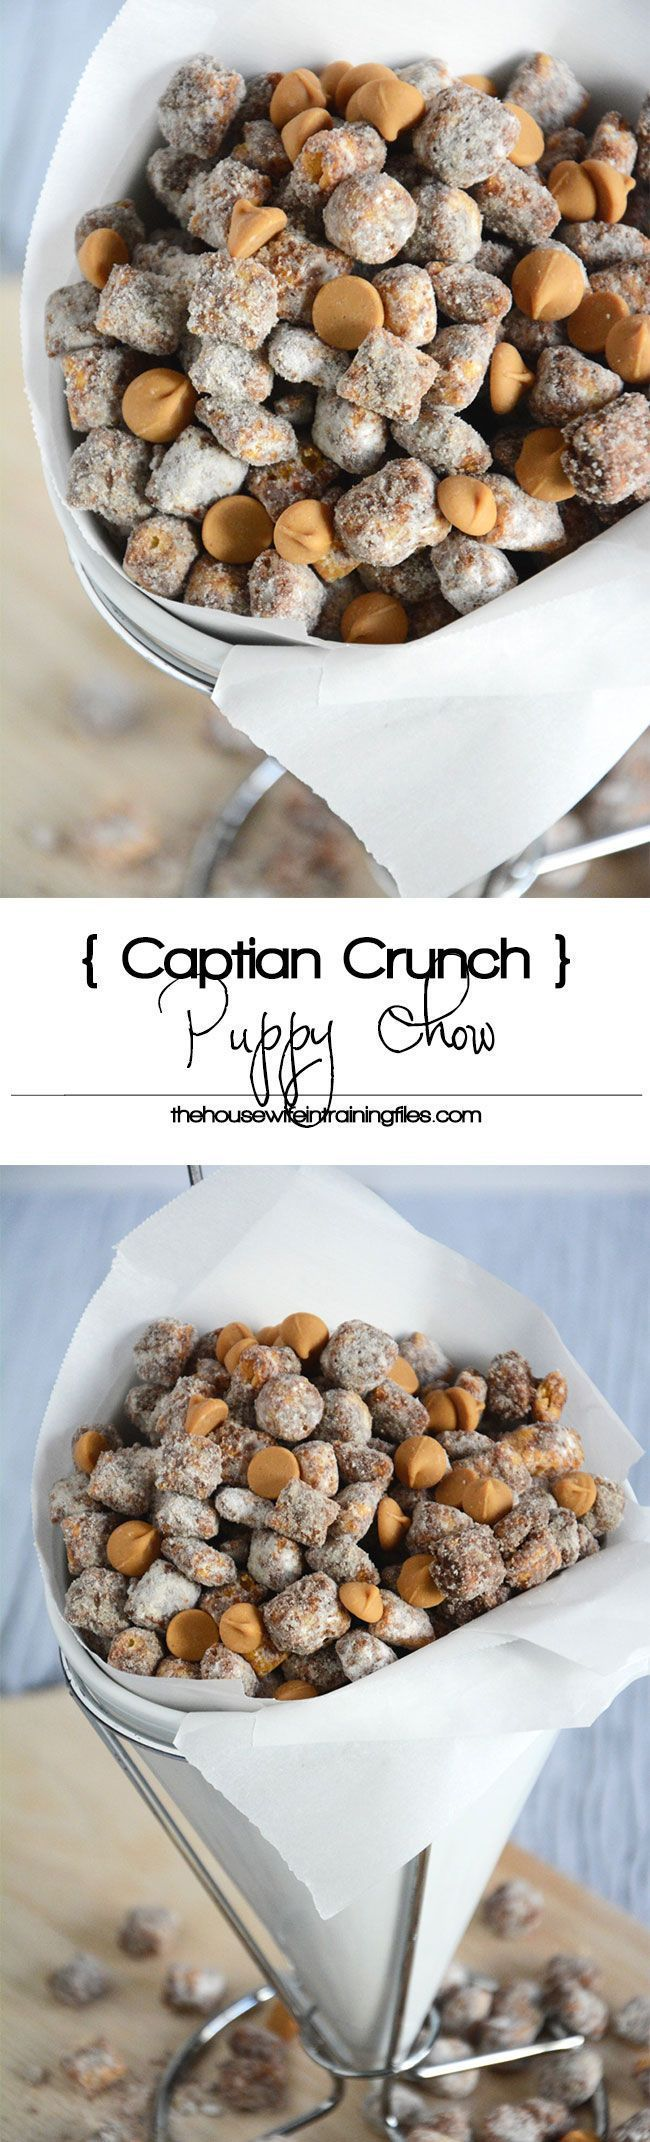 Healthy Easy Puppy Chow Peanut Butter, 4th of July, How